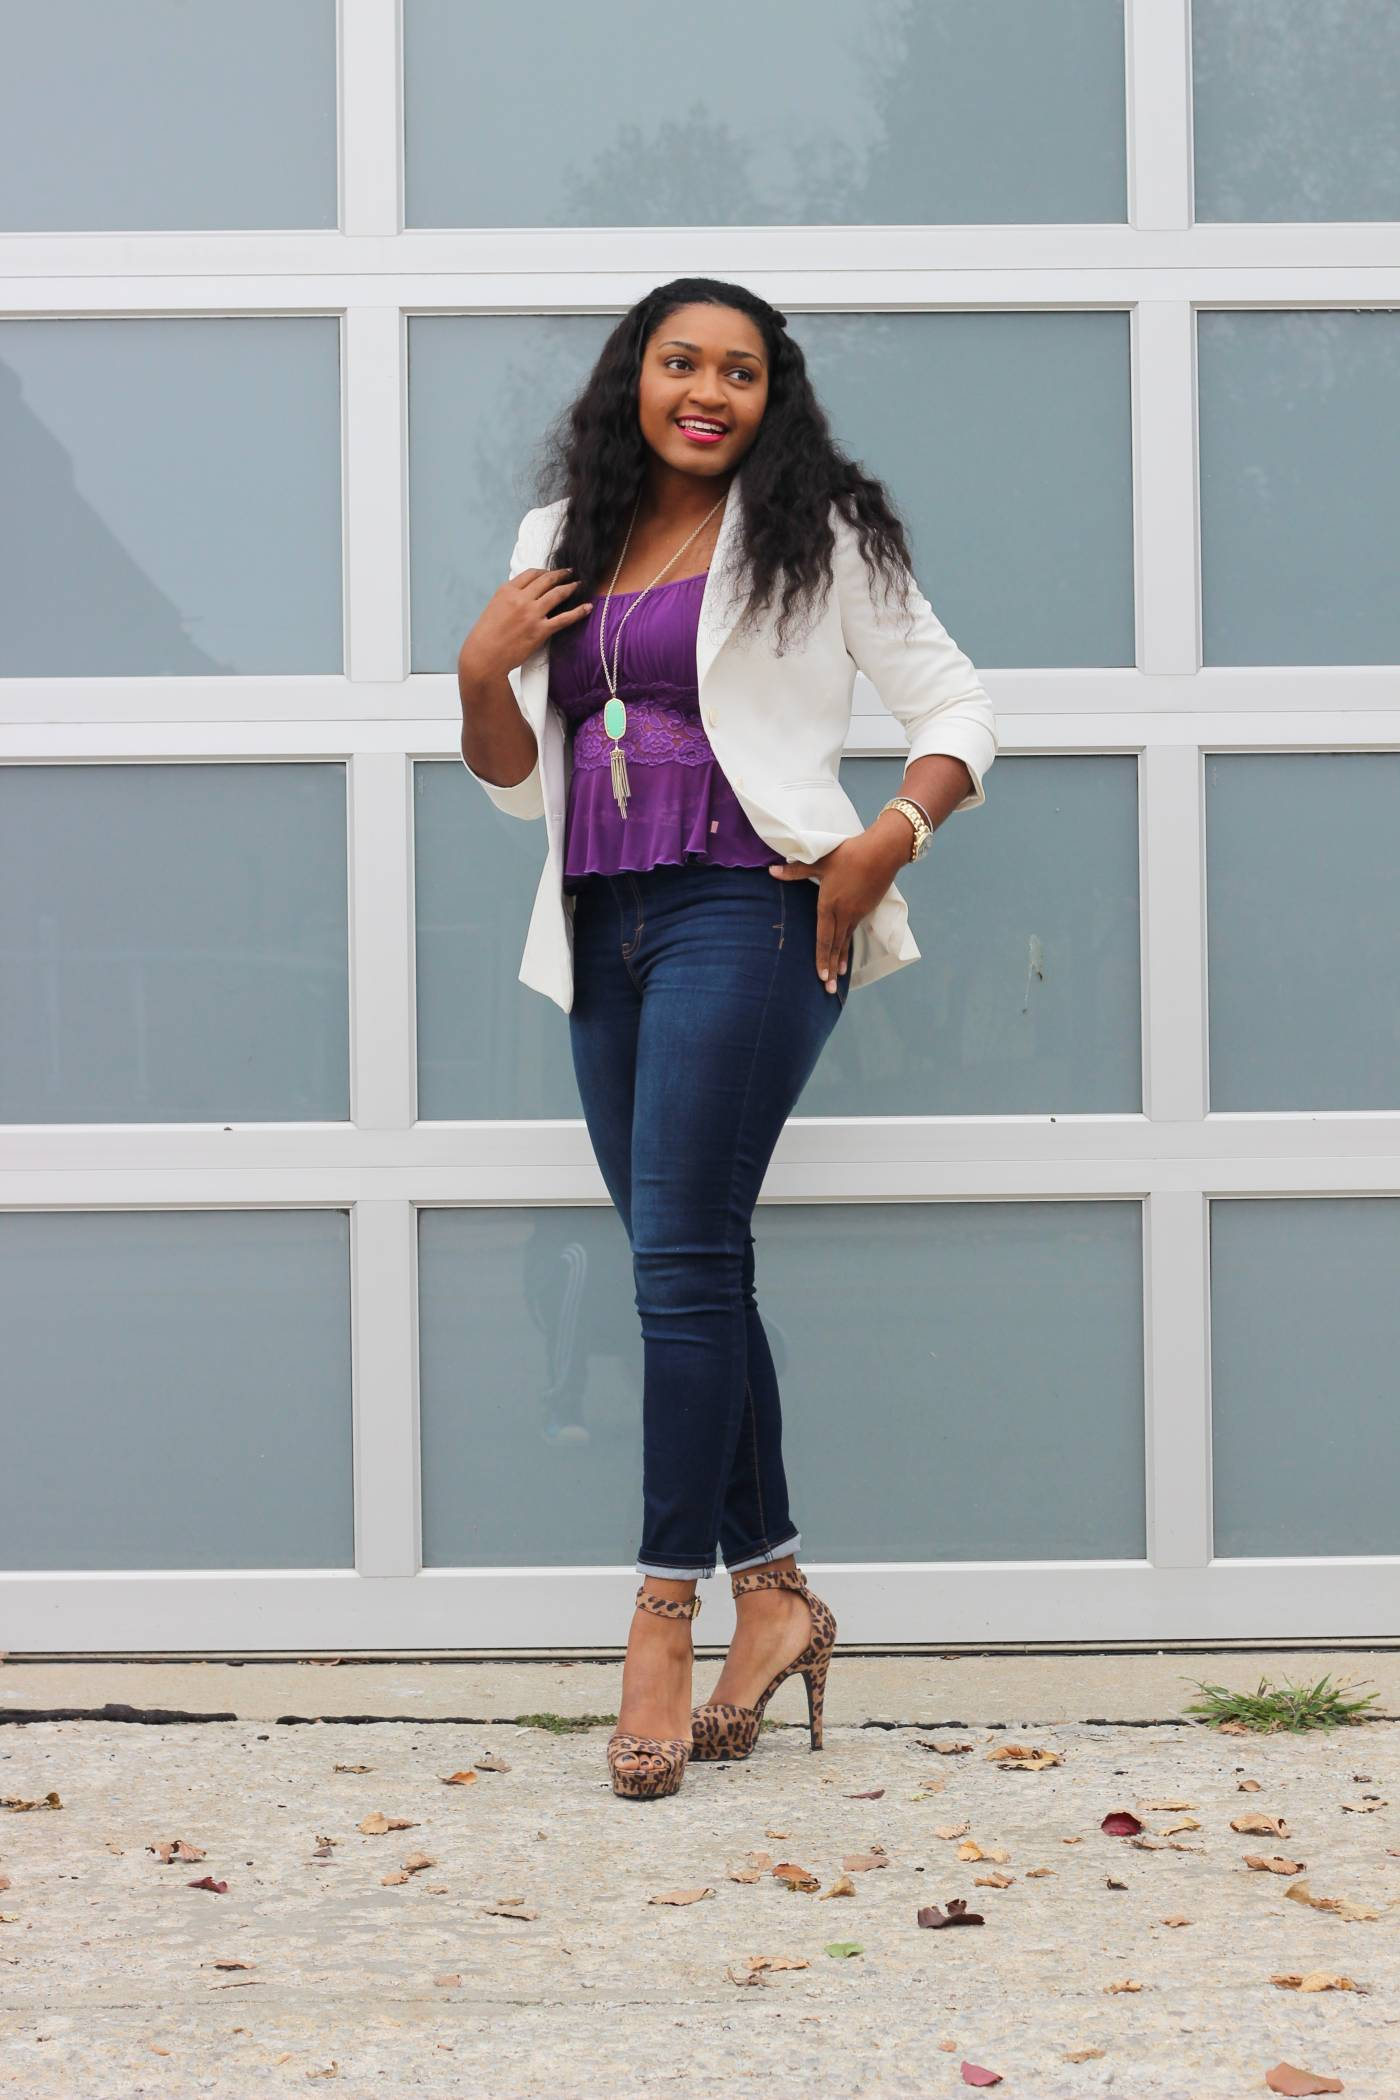 Smiles + Lace by Jasmine Diane of jasminediane.com. Black fashion bloggers, bloggers in Kansas City. Big Smiles. Purple lace. White blazer. Skinny jeans. Bloggers of color. Lace. Be Happy. Inspire.